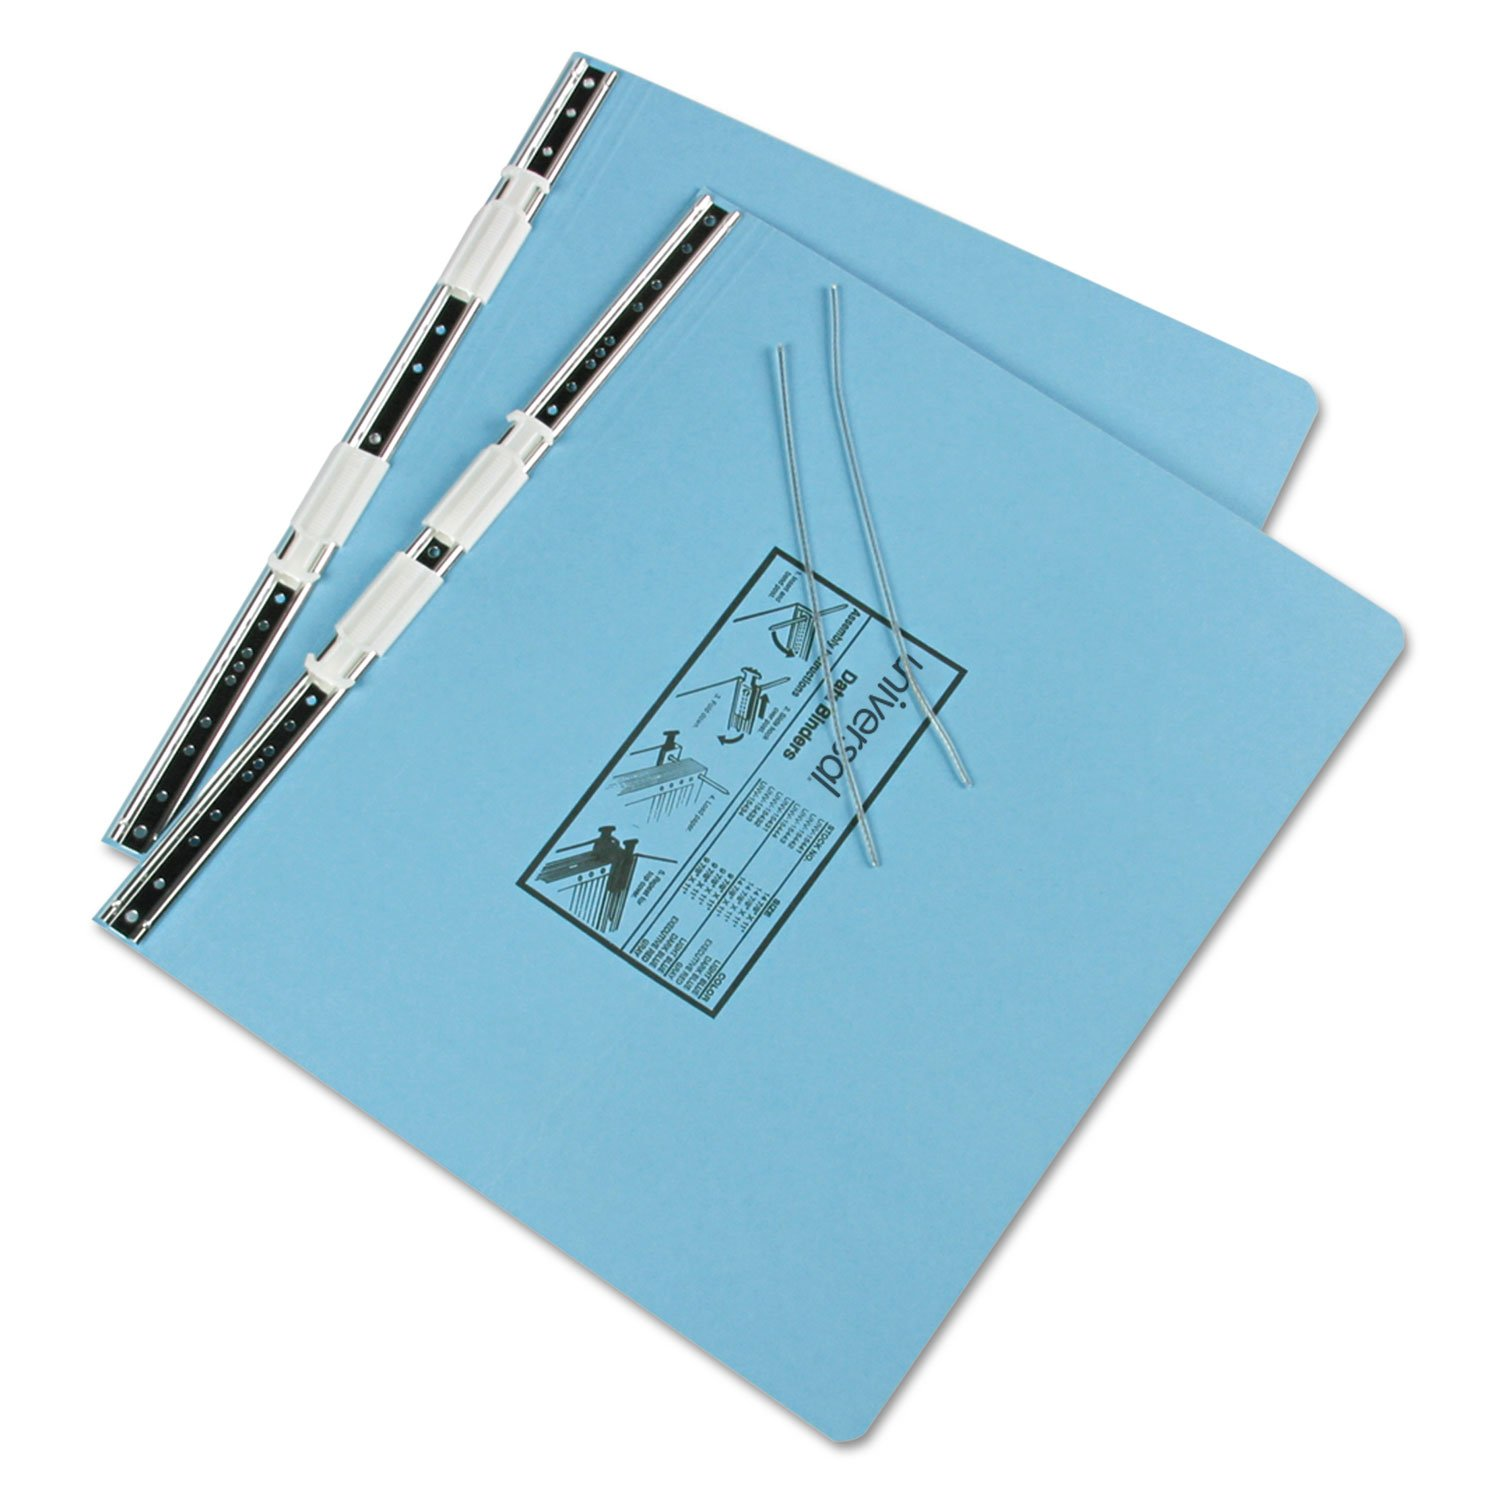 Universal 15441 Pressboard Hanging Data Binder, 14-7/8 x 11 Unburst Sheets, Light Blue